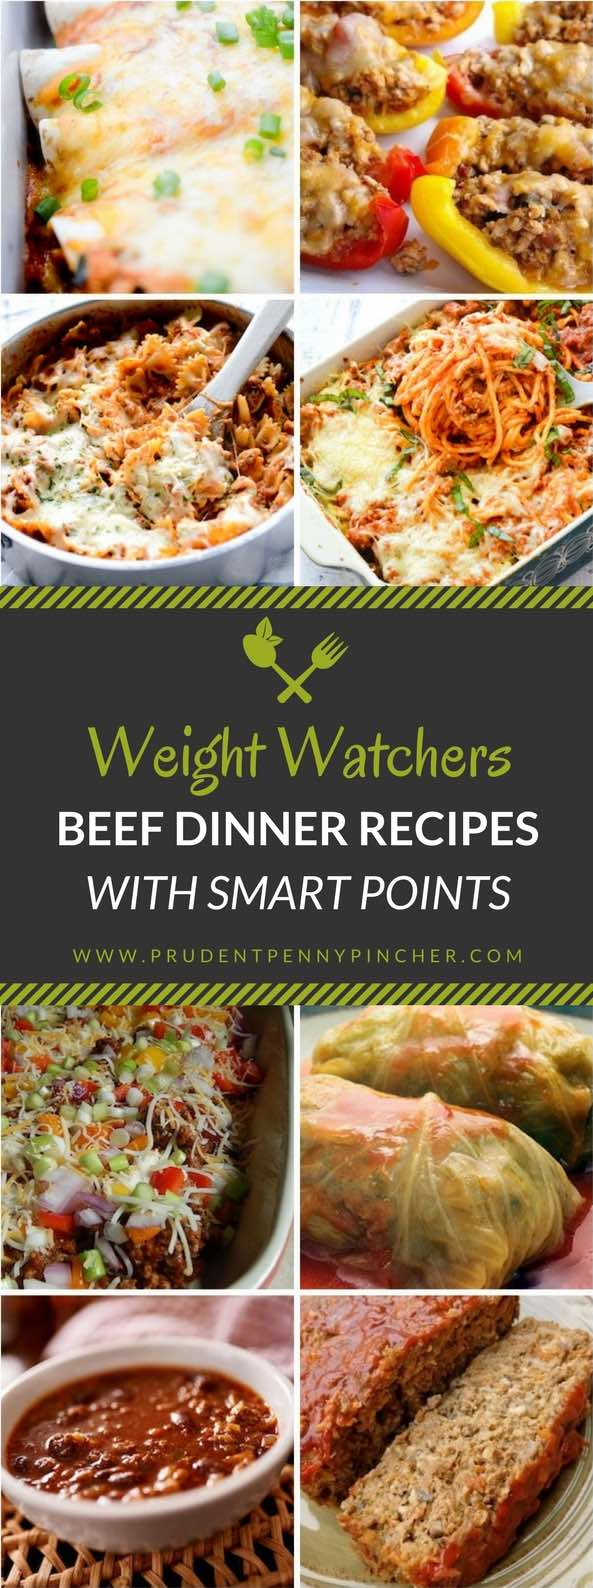 Weight Watcher Beef Recipes With Smart Points